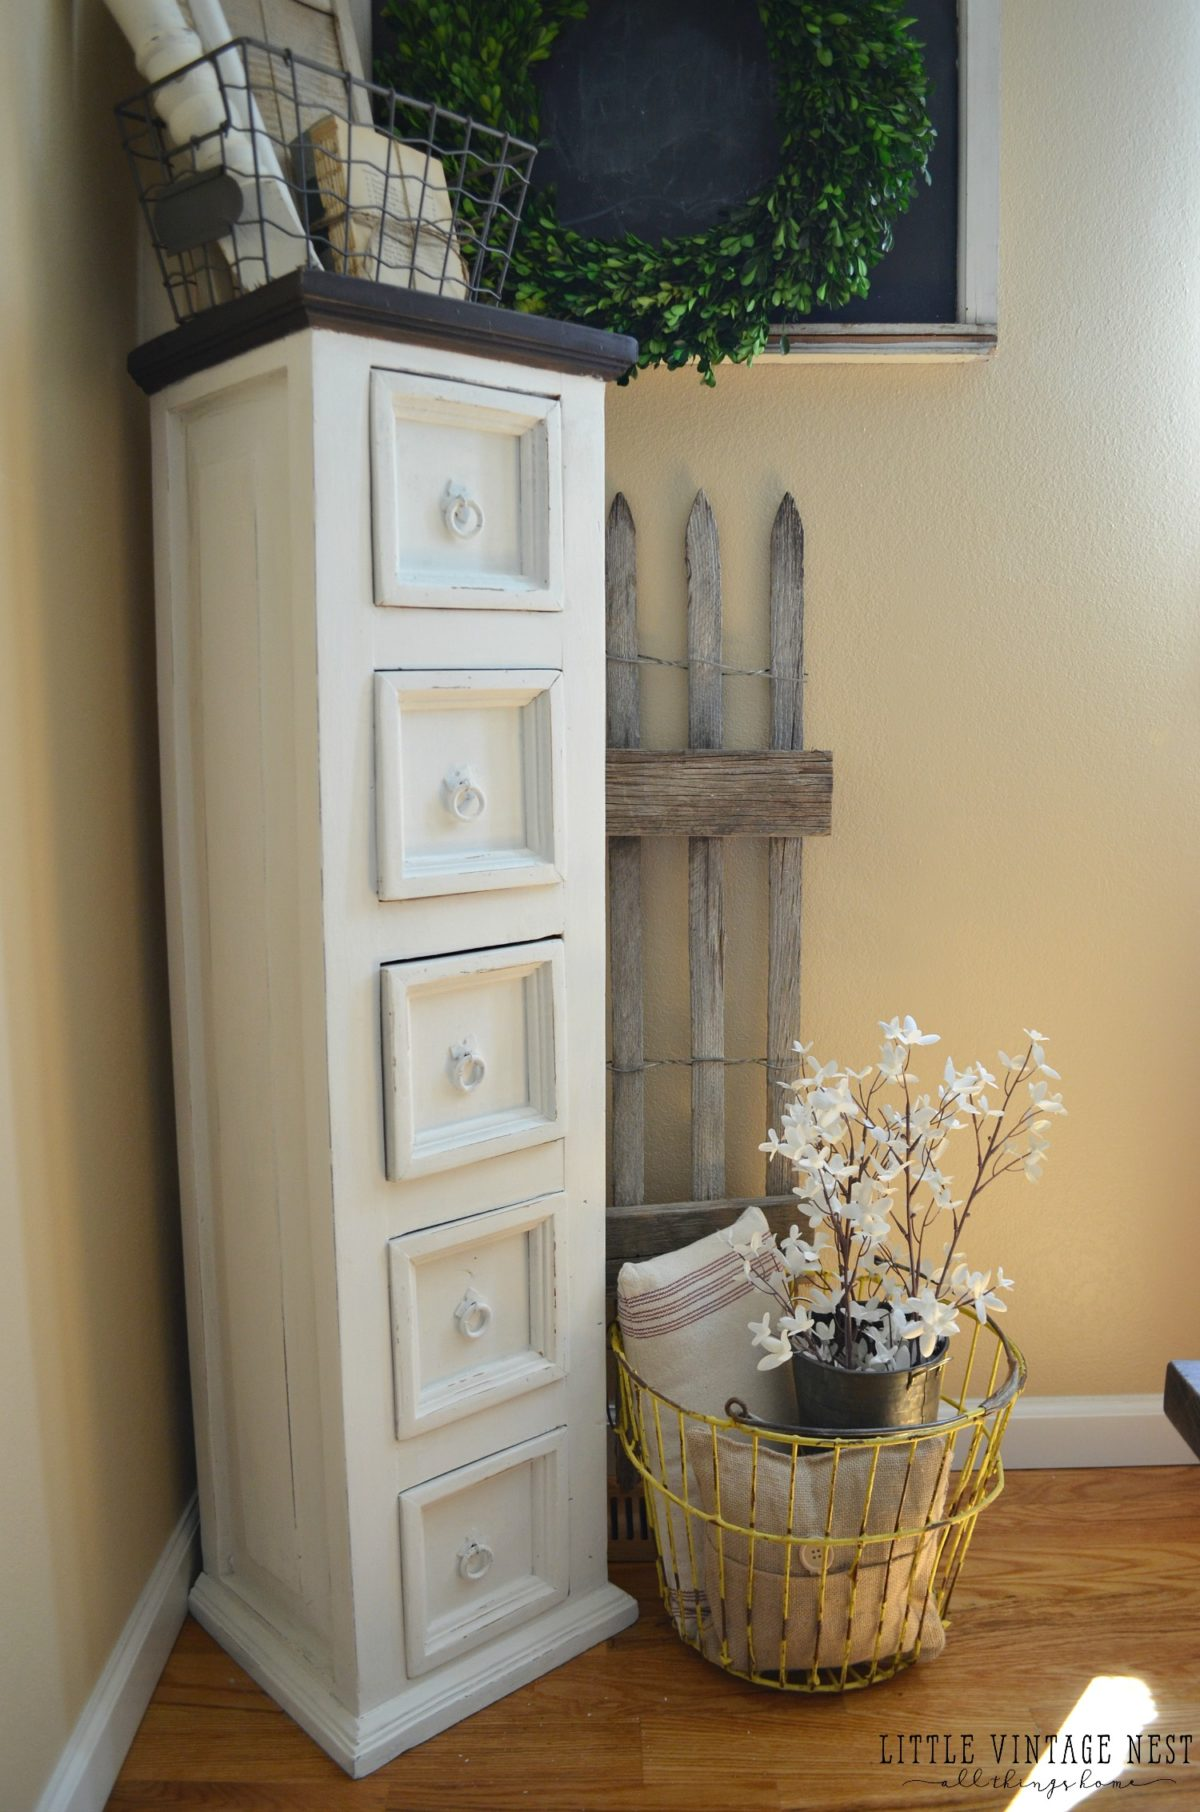 Farmhouse Decor & Dining Room Storage Cabinet